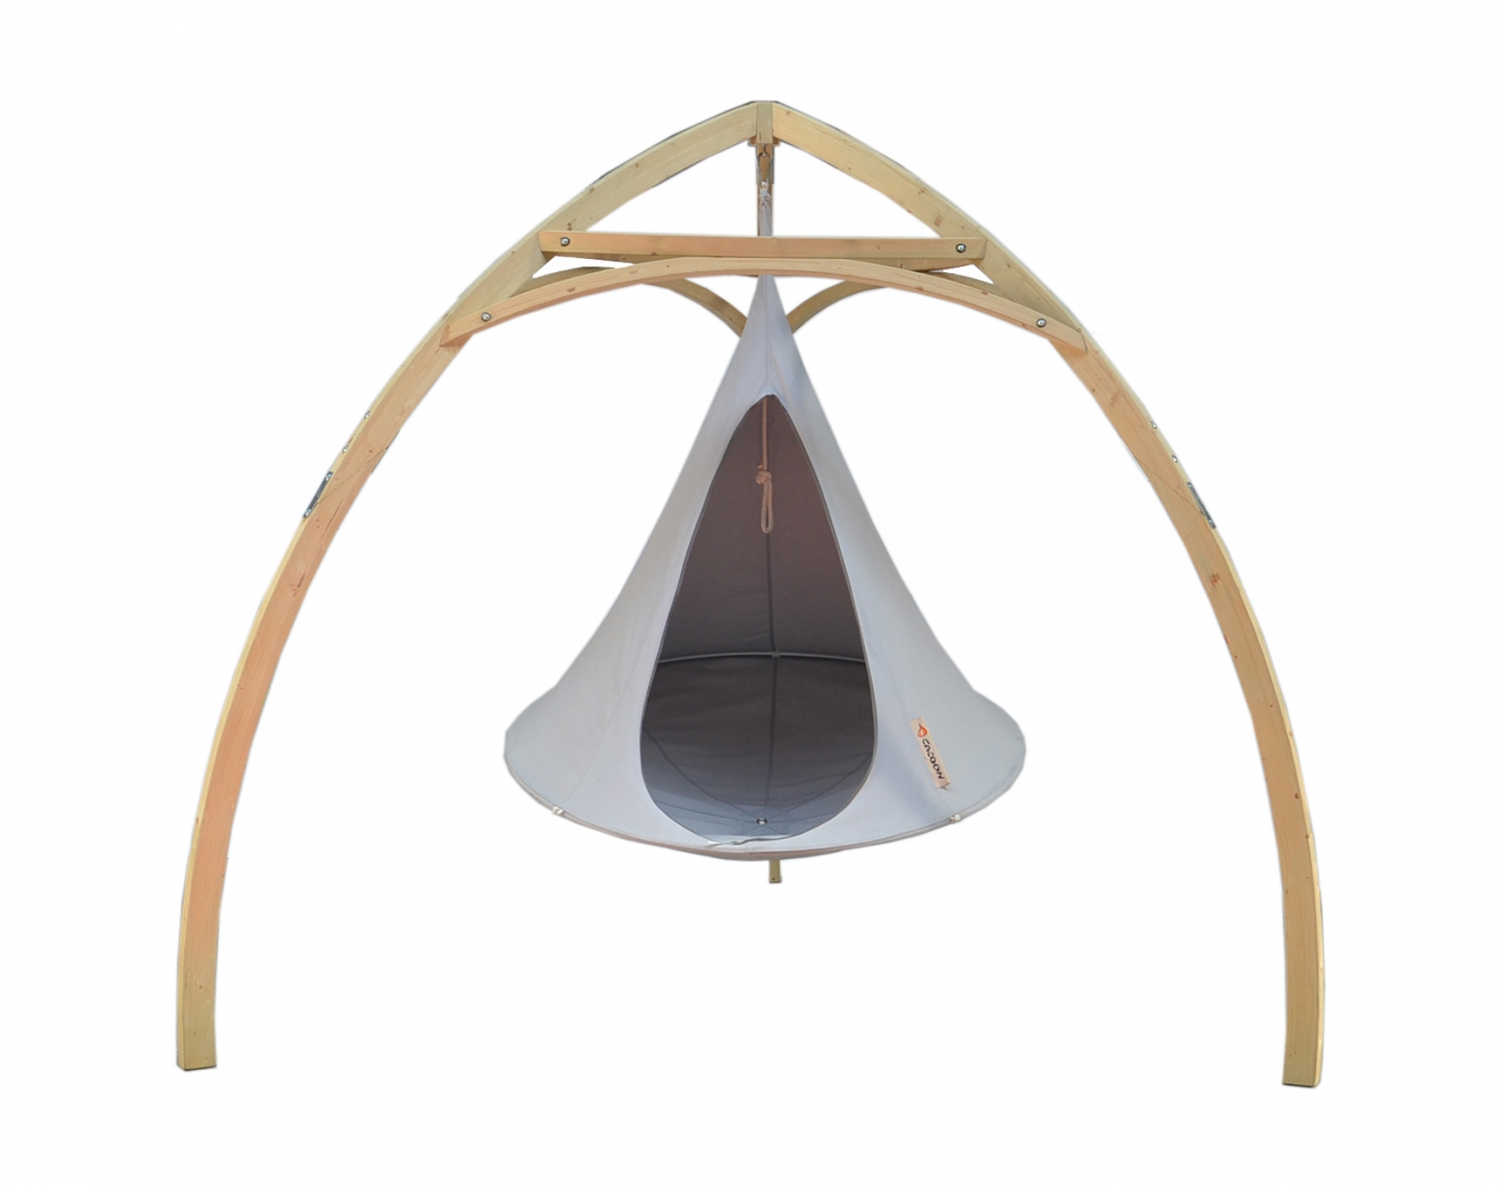 Cacoon Tripod Wood Frame For Hanging Tent Stand Patio Life